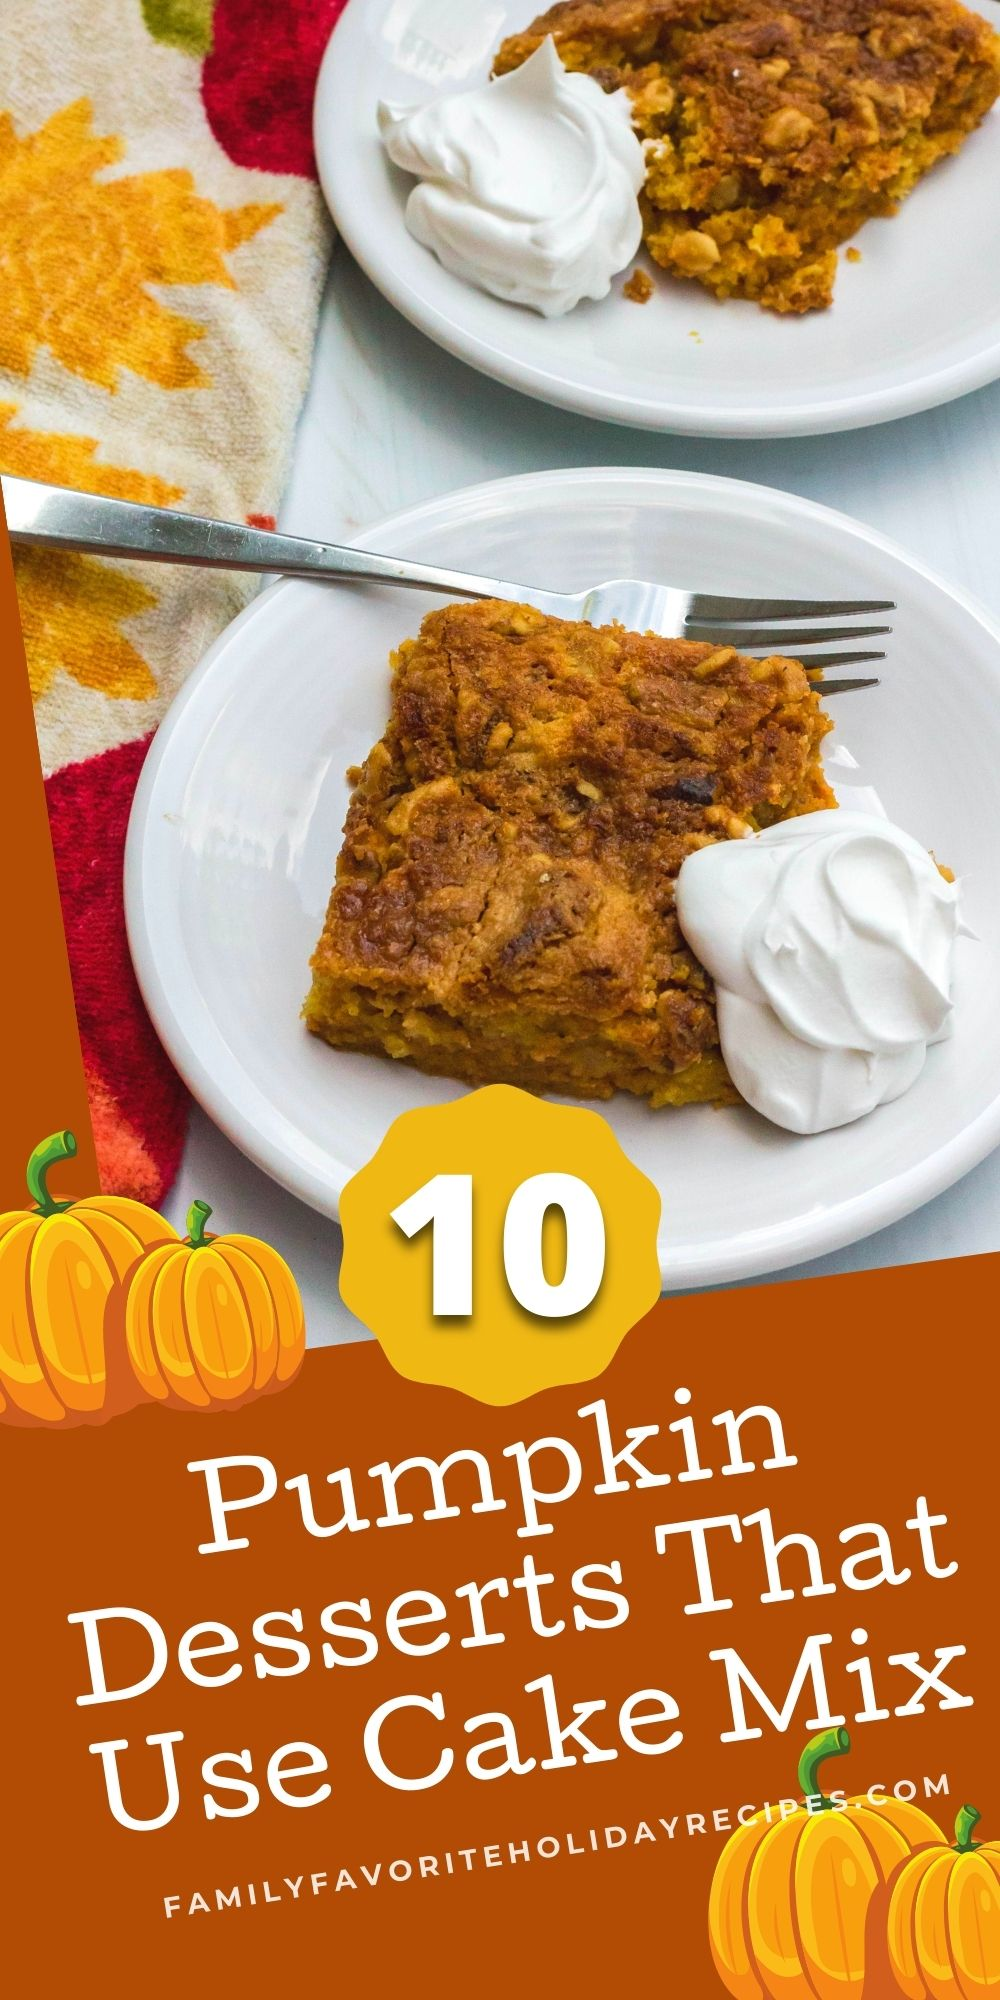 pumpkin crunch cake, which is a pumpkin dessert made with cake mix, on a white plate.